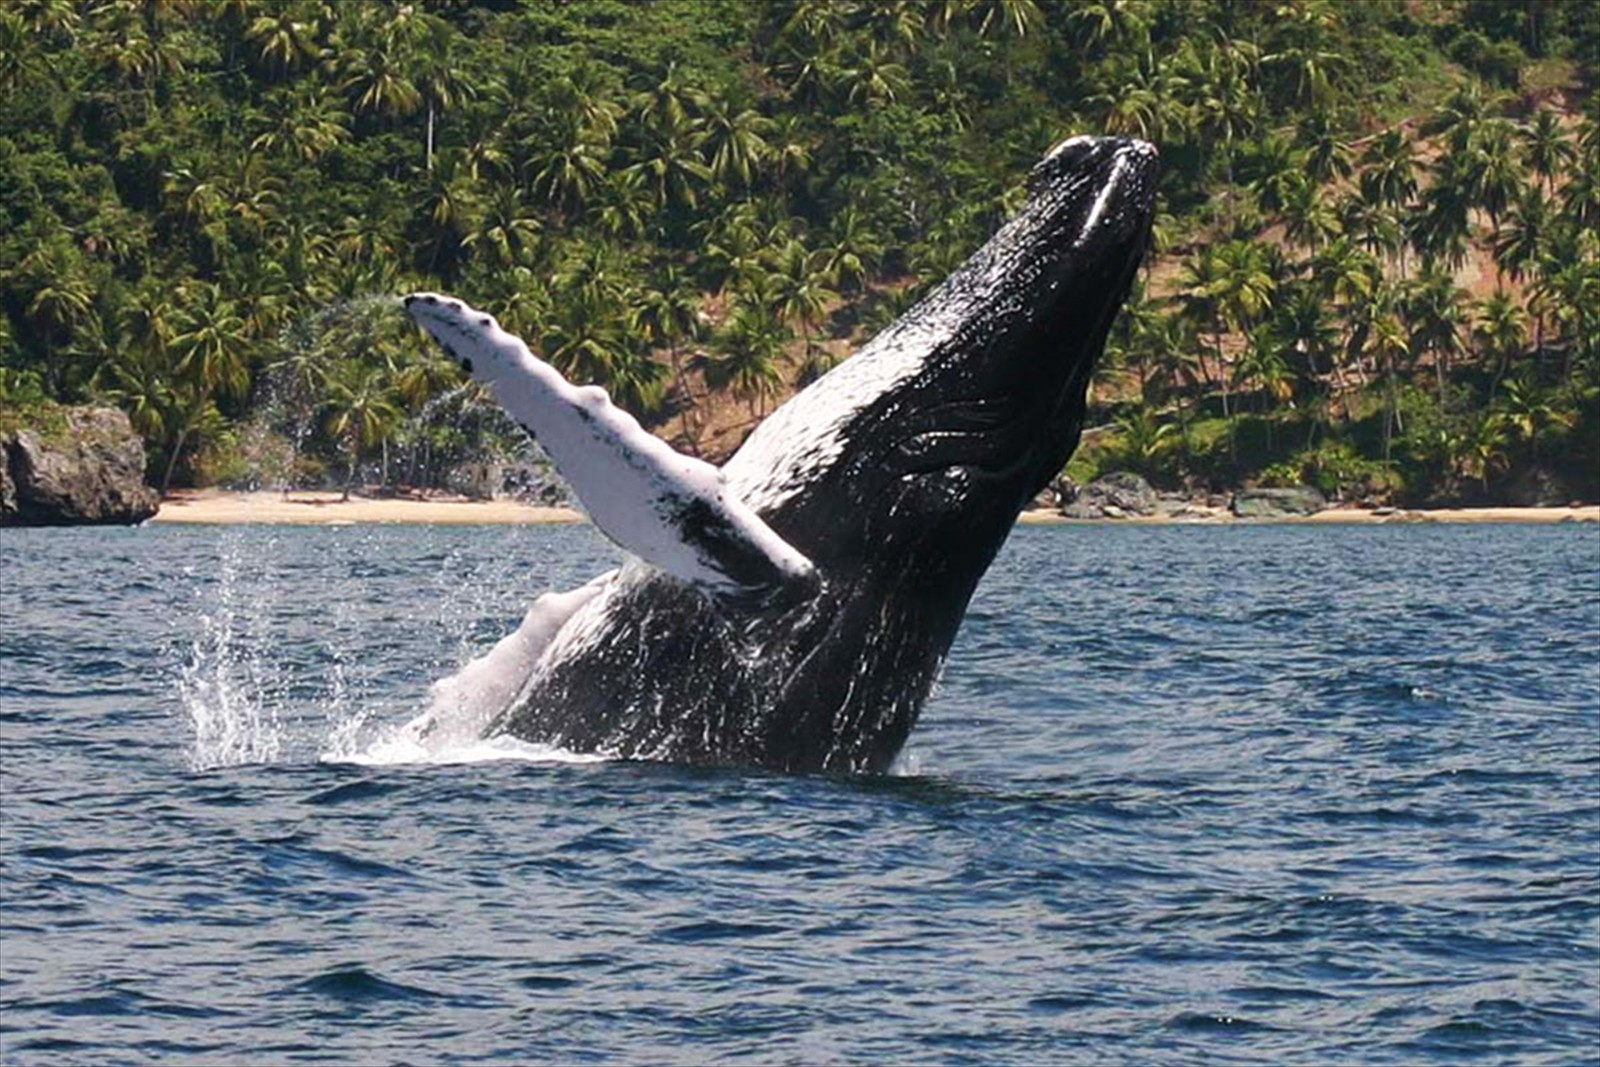 Whale Watching Tour in Samana Bay from Las Terrenas, Samana.